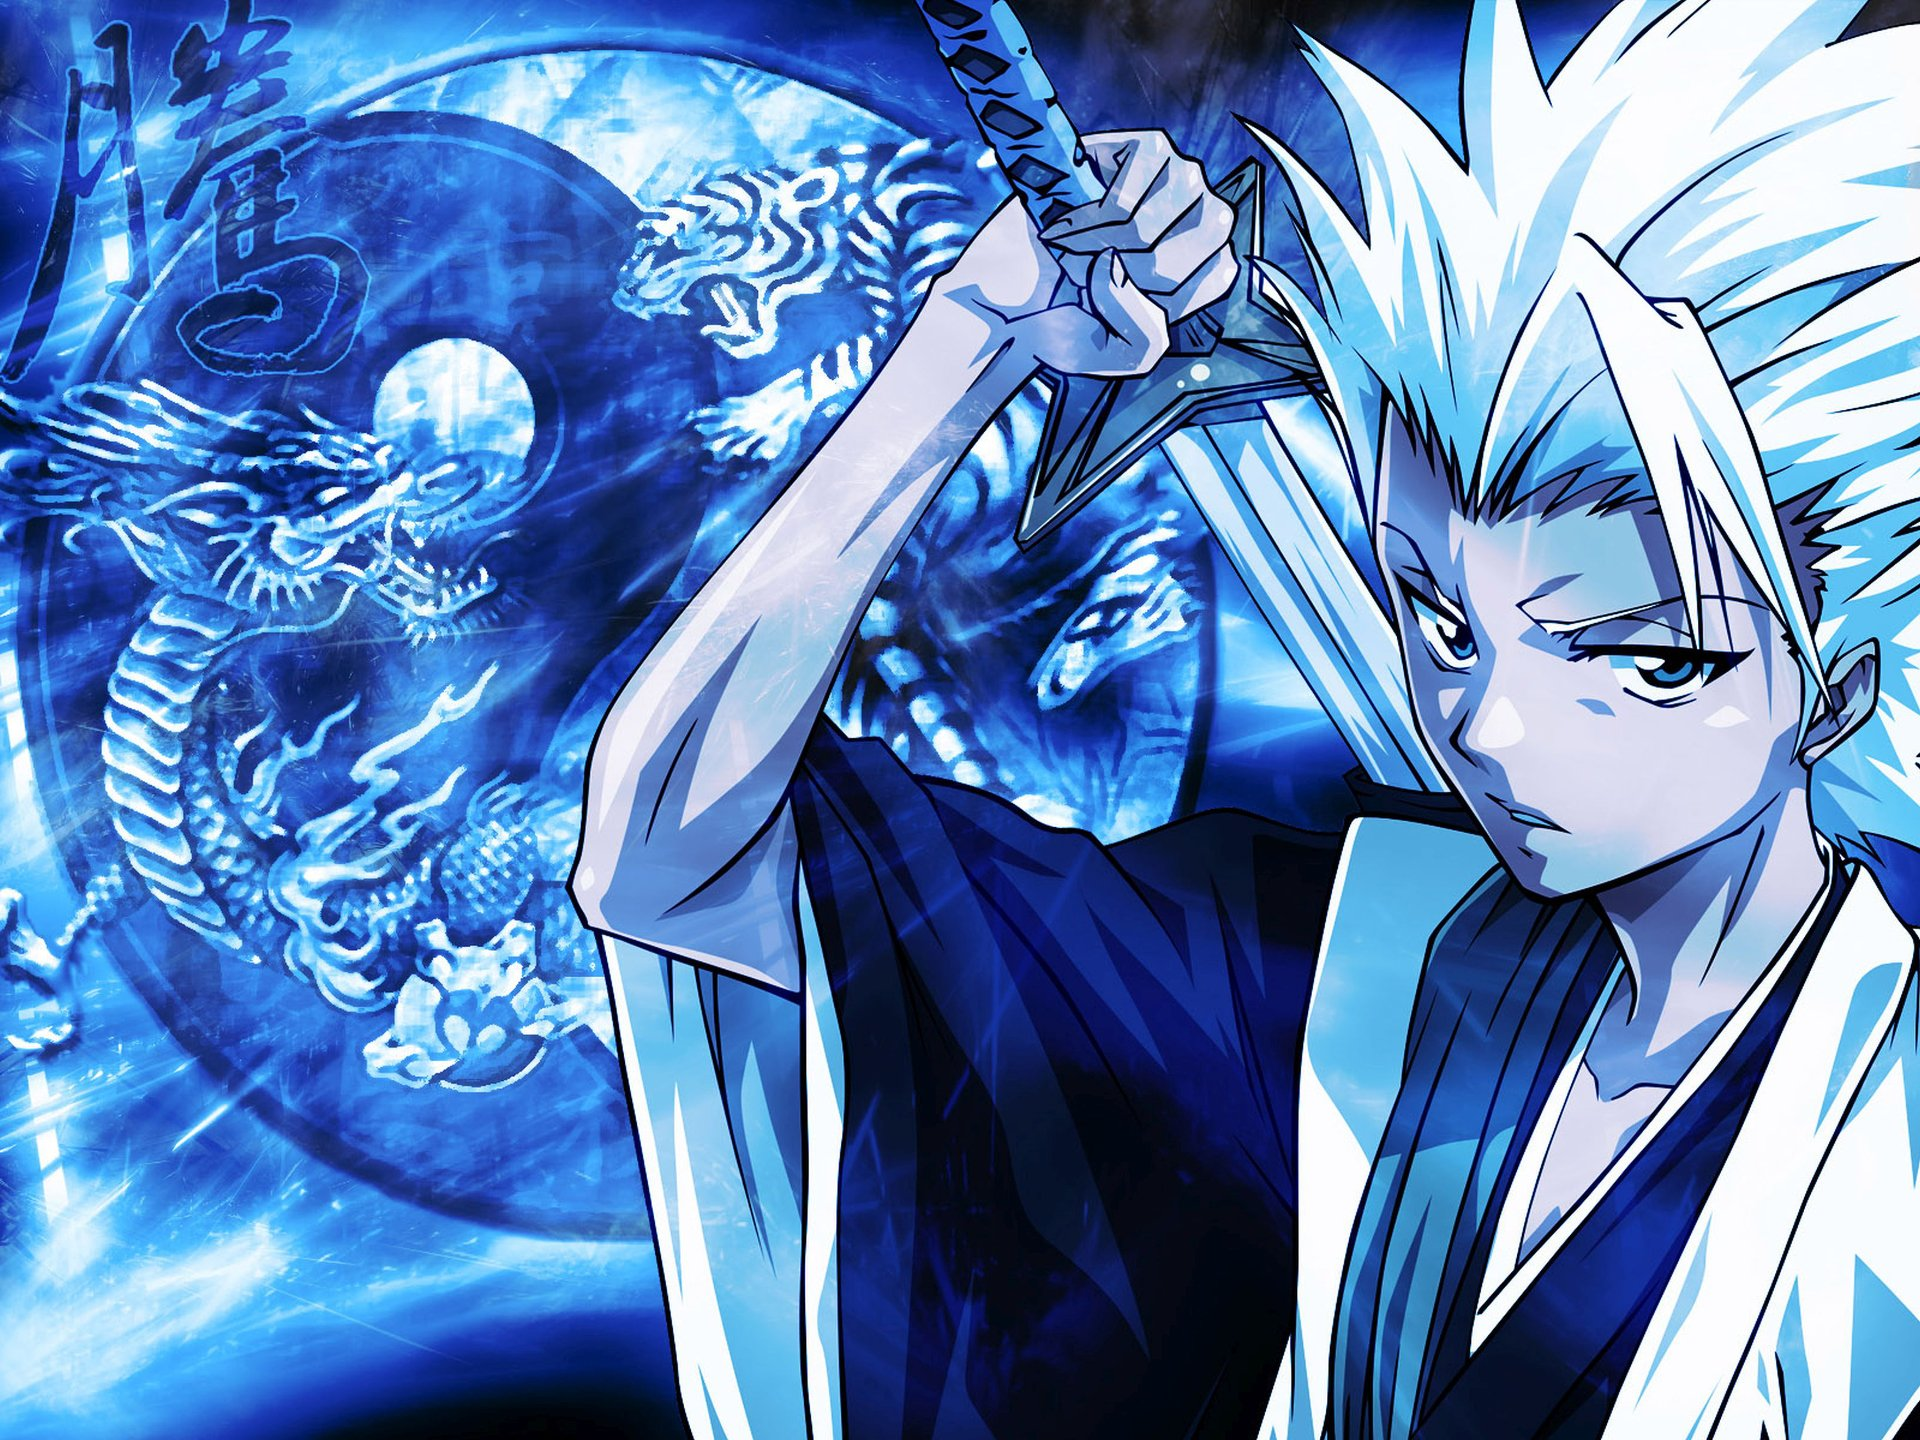 Anime Wallpapers 48 Anime Images for 2MTX Anime 1920x1440